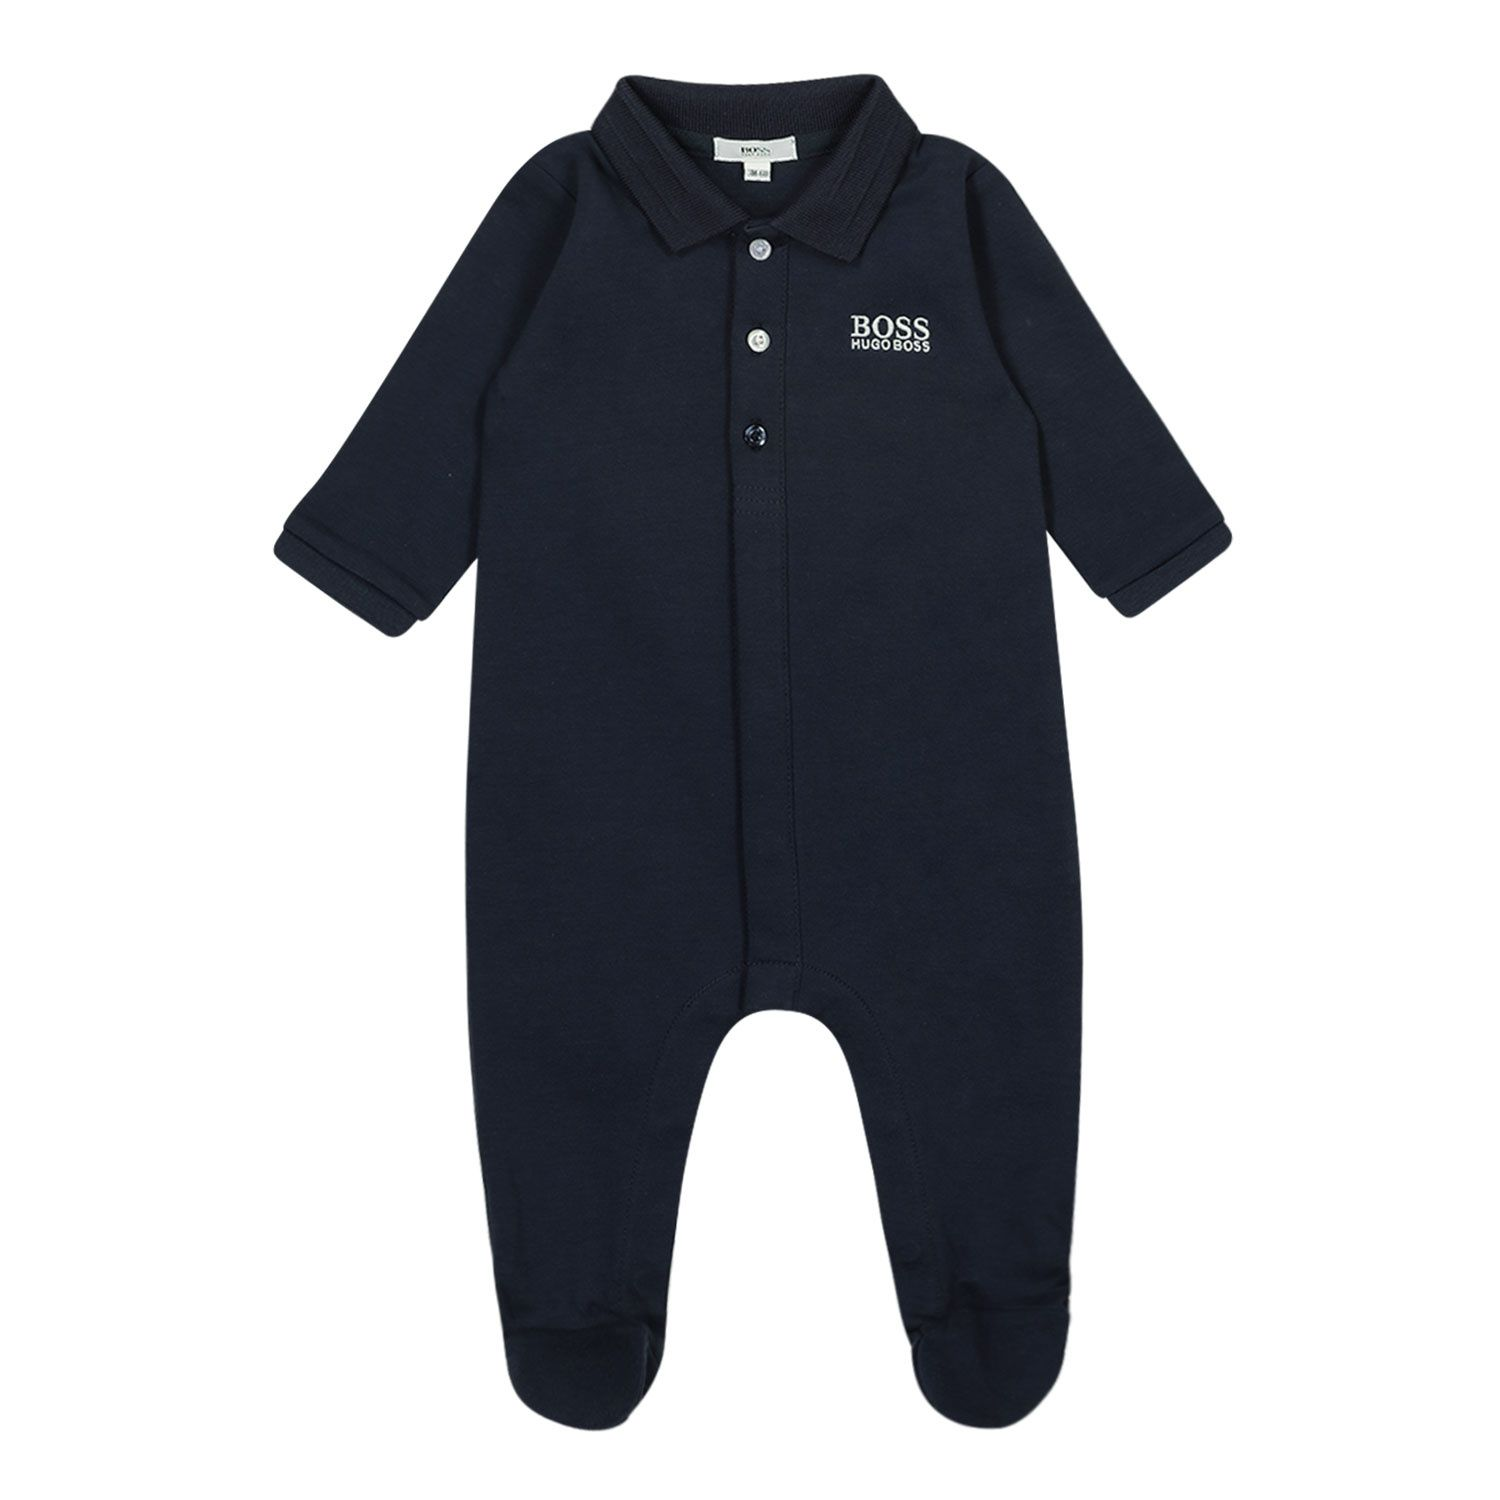 Picture of Boss J97169 baby playsuit navy